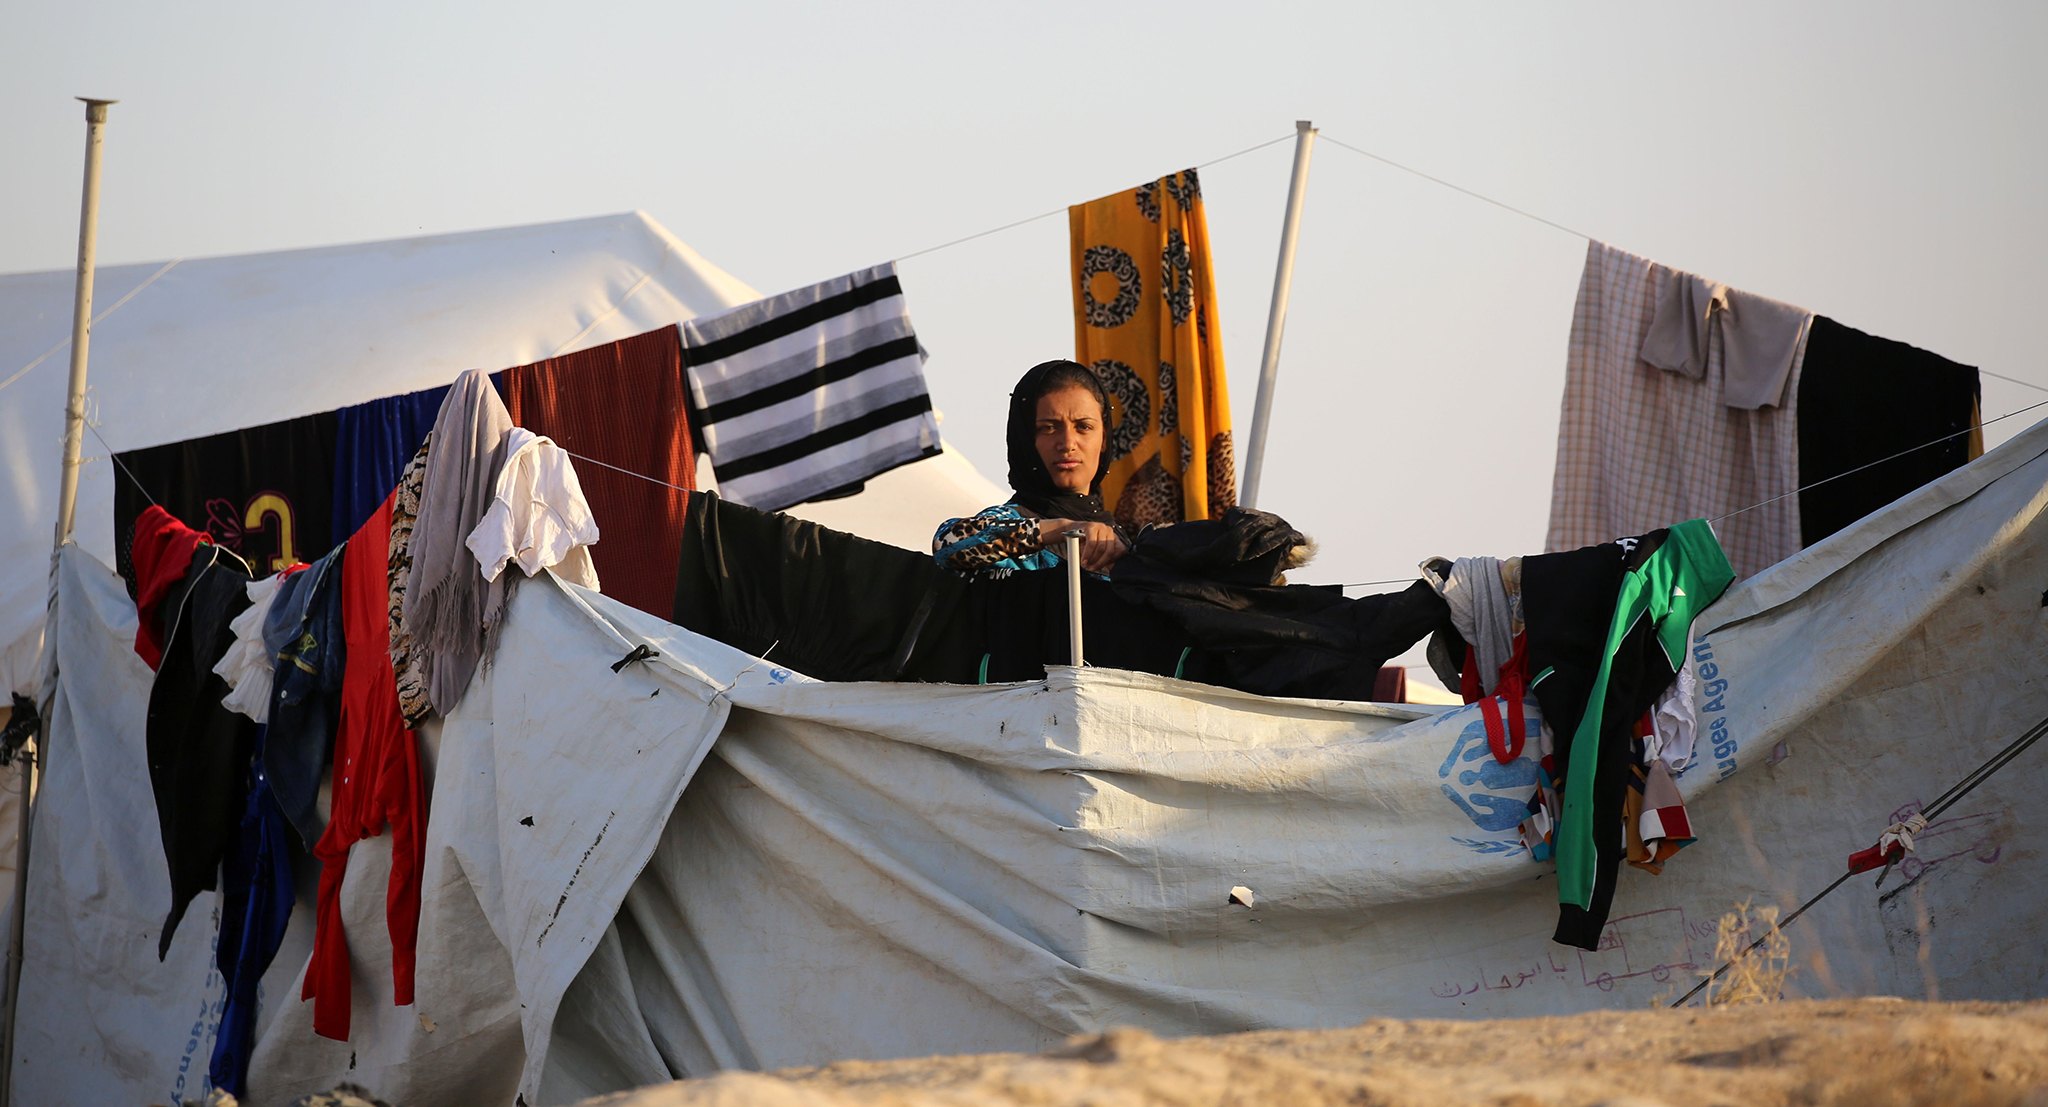 A woman poses at a refugee camp housing Iraqi families who fled fighting in the Mosul area on October 17, 2016 in the northeastern town of al-Hol in Syria's Hasakeh province.  The battle to retake the Iraqi city of Mosul from jihadists could unleash a massive humanitarian crisis, potentially pushing hundreds of thousands to flee their homes as winter sets in. / AFP PHOTO / DELIL SOULEIMANDELIL SOULEIMAN/AFP/Getty Images